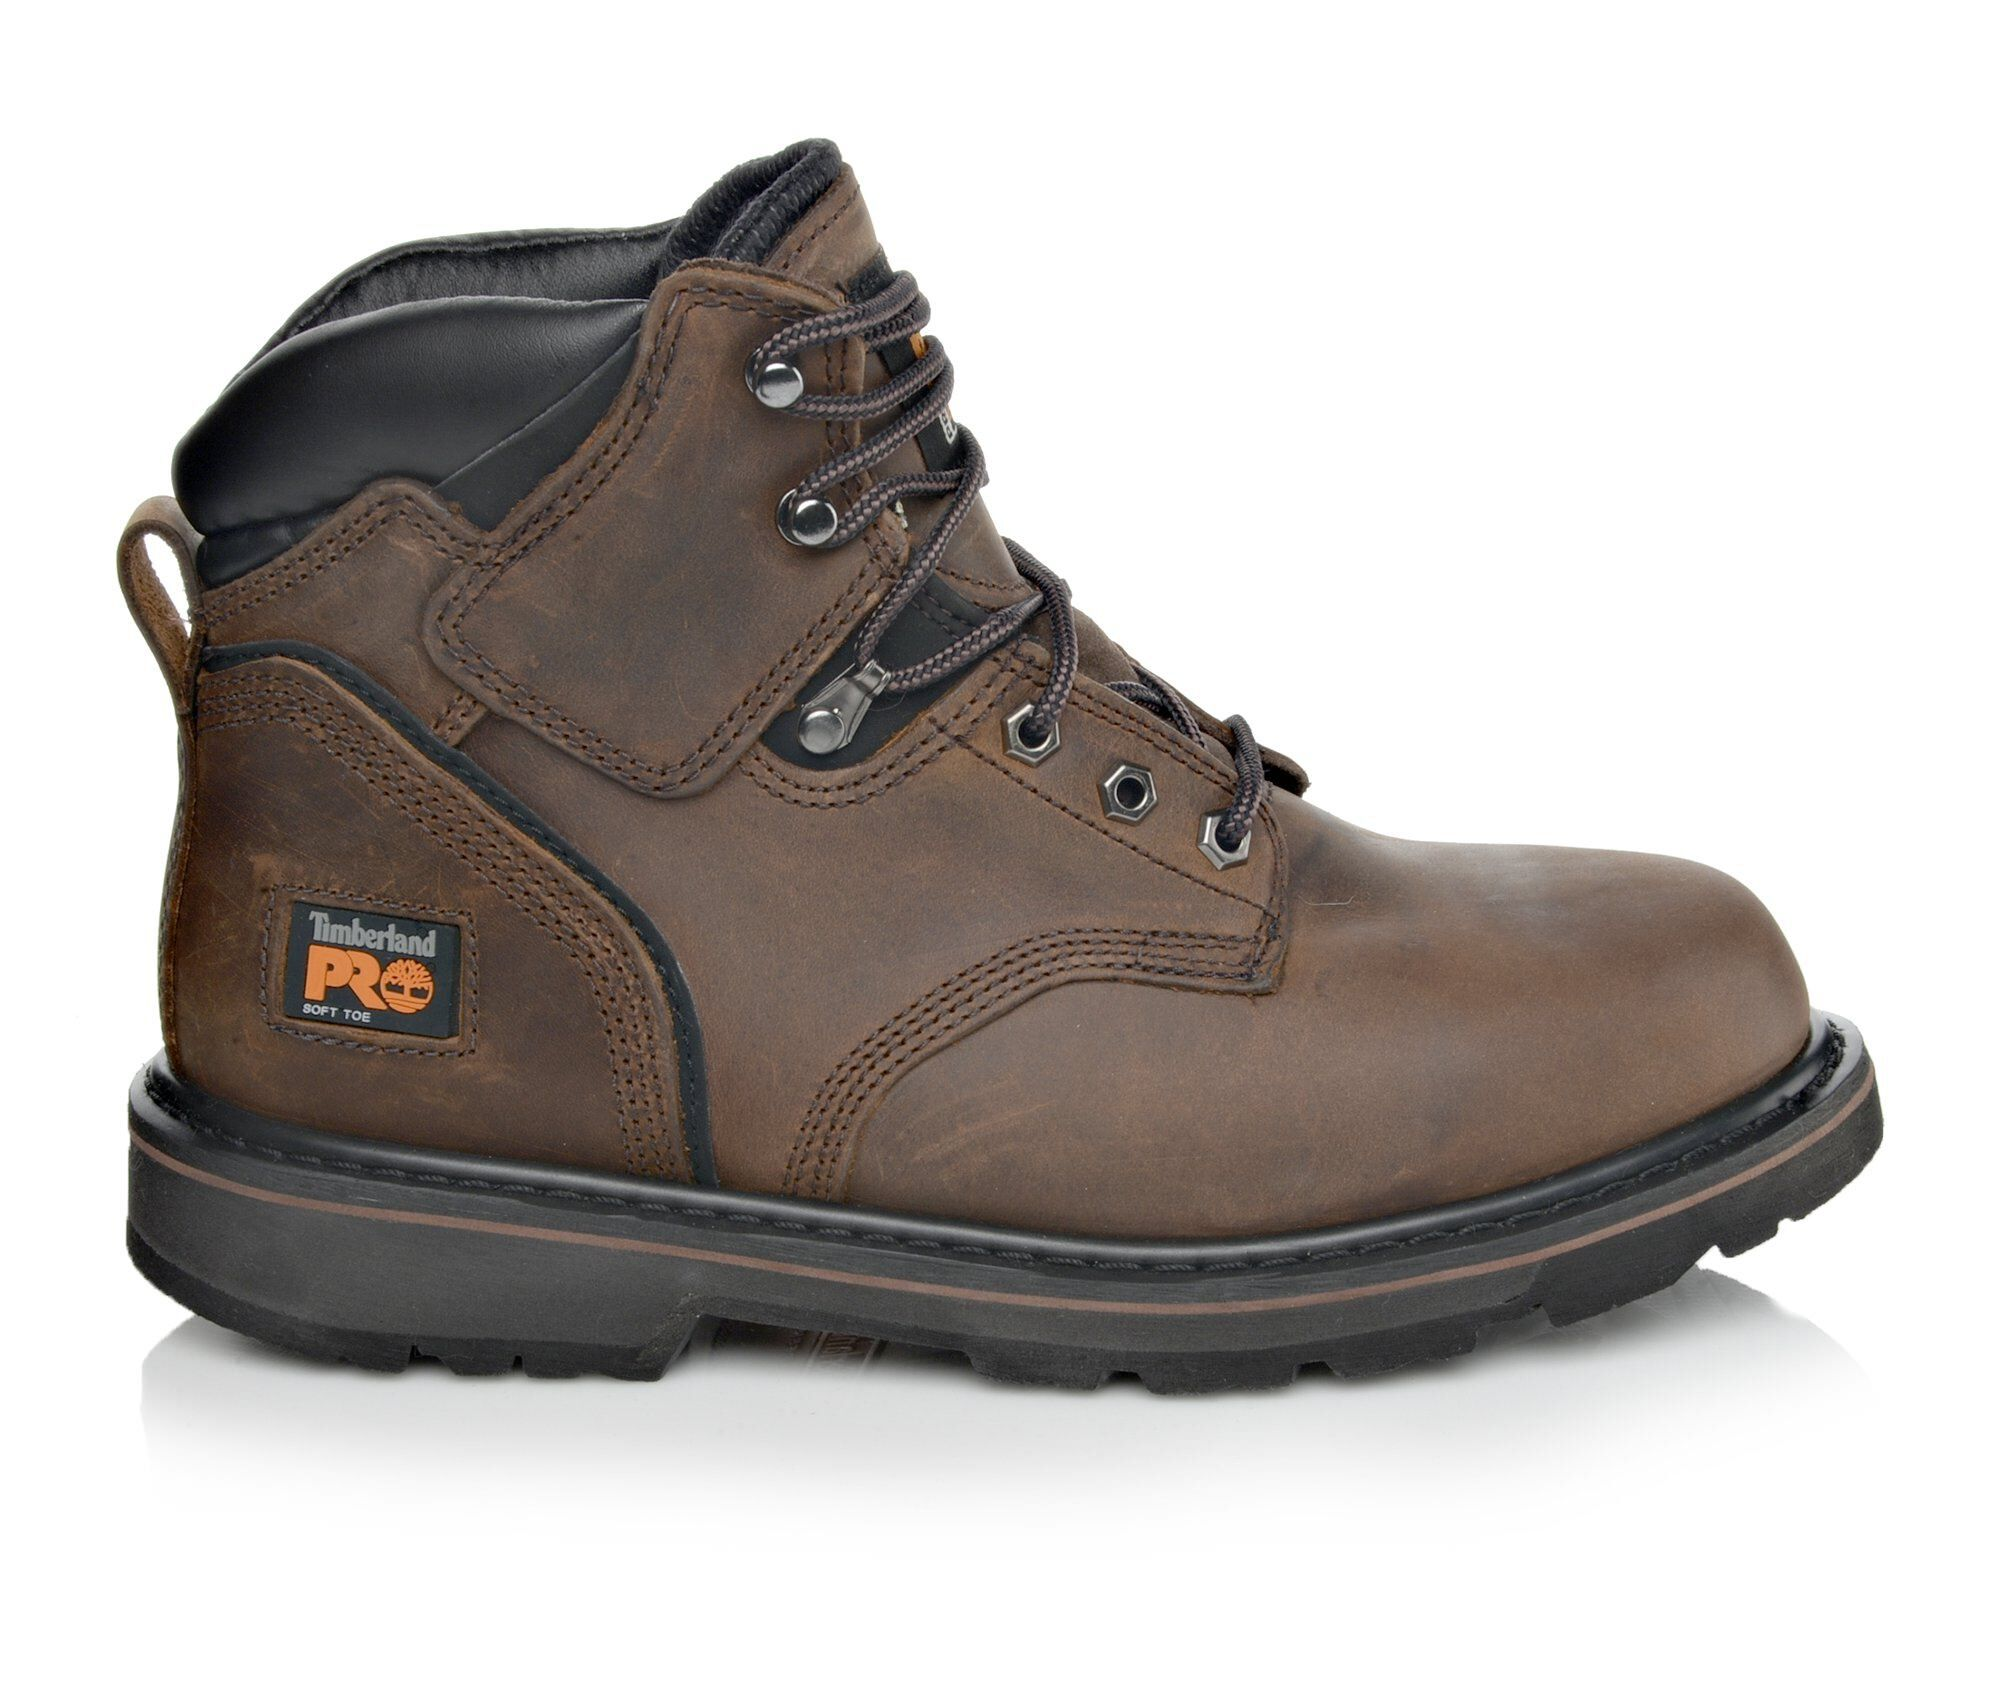 """Timberland PRO Boots Mens Pit Boss 6/"""" Soft or Steel Toe Leather Boot Brown Black"""